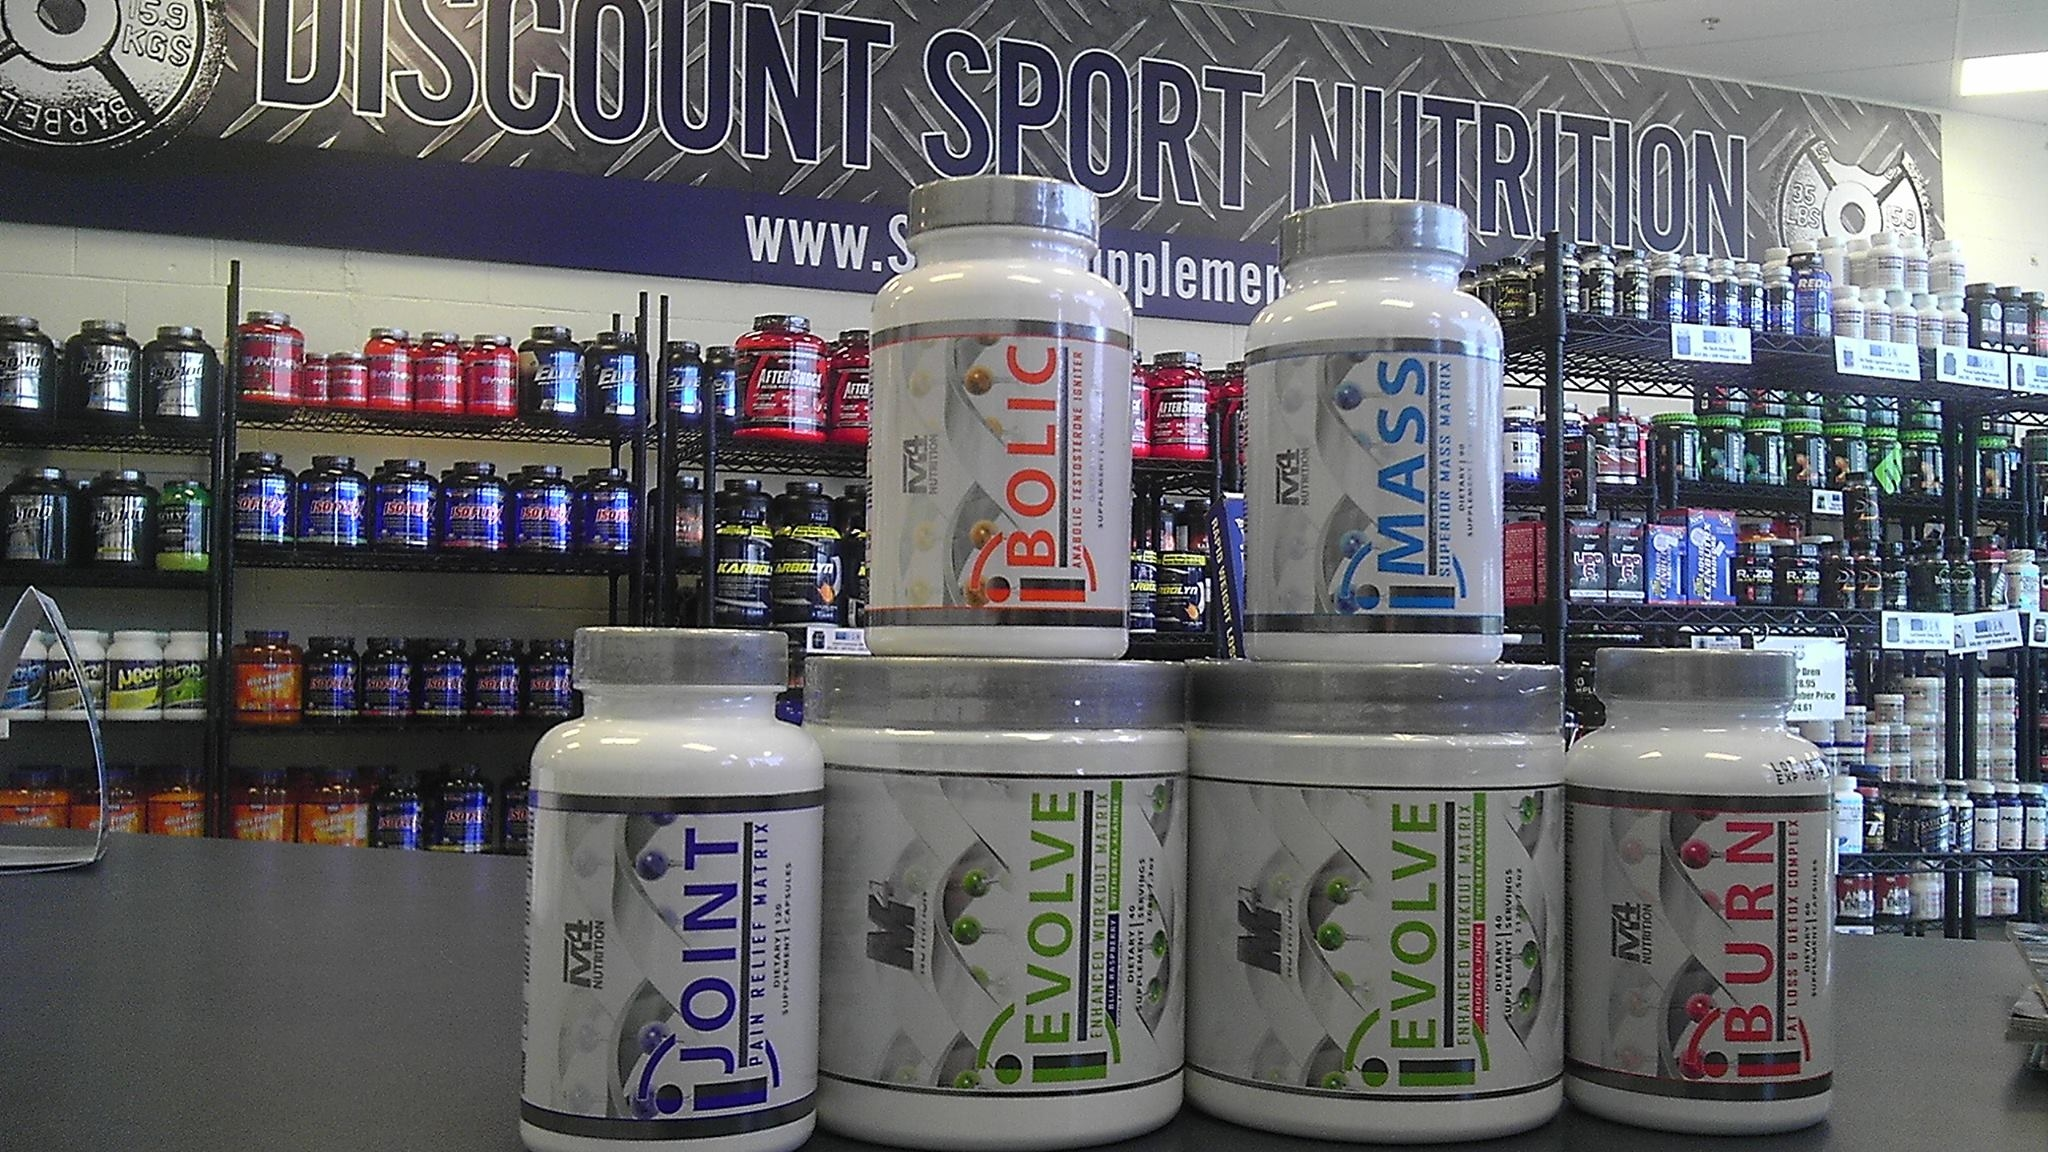 Discount Sport Nutrition In Tulsa Ok Whitepages